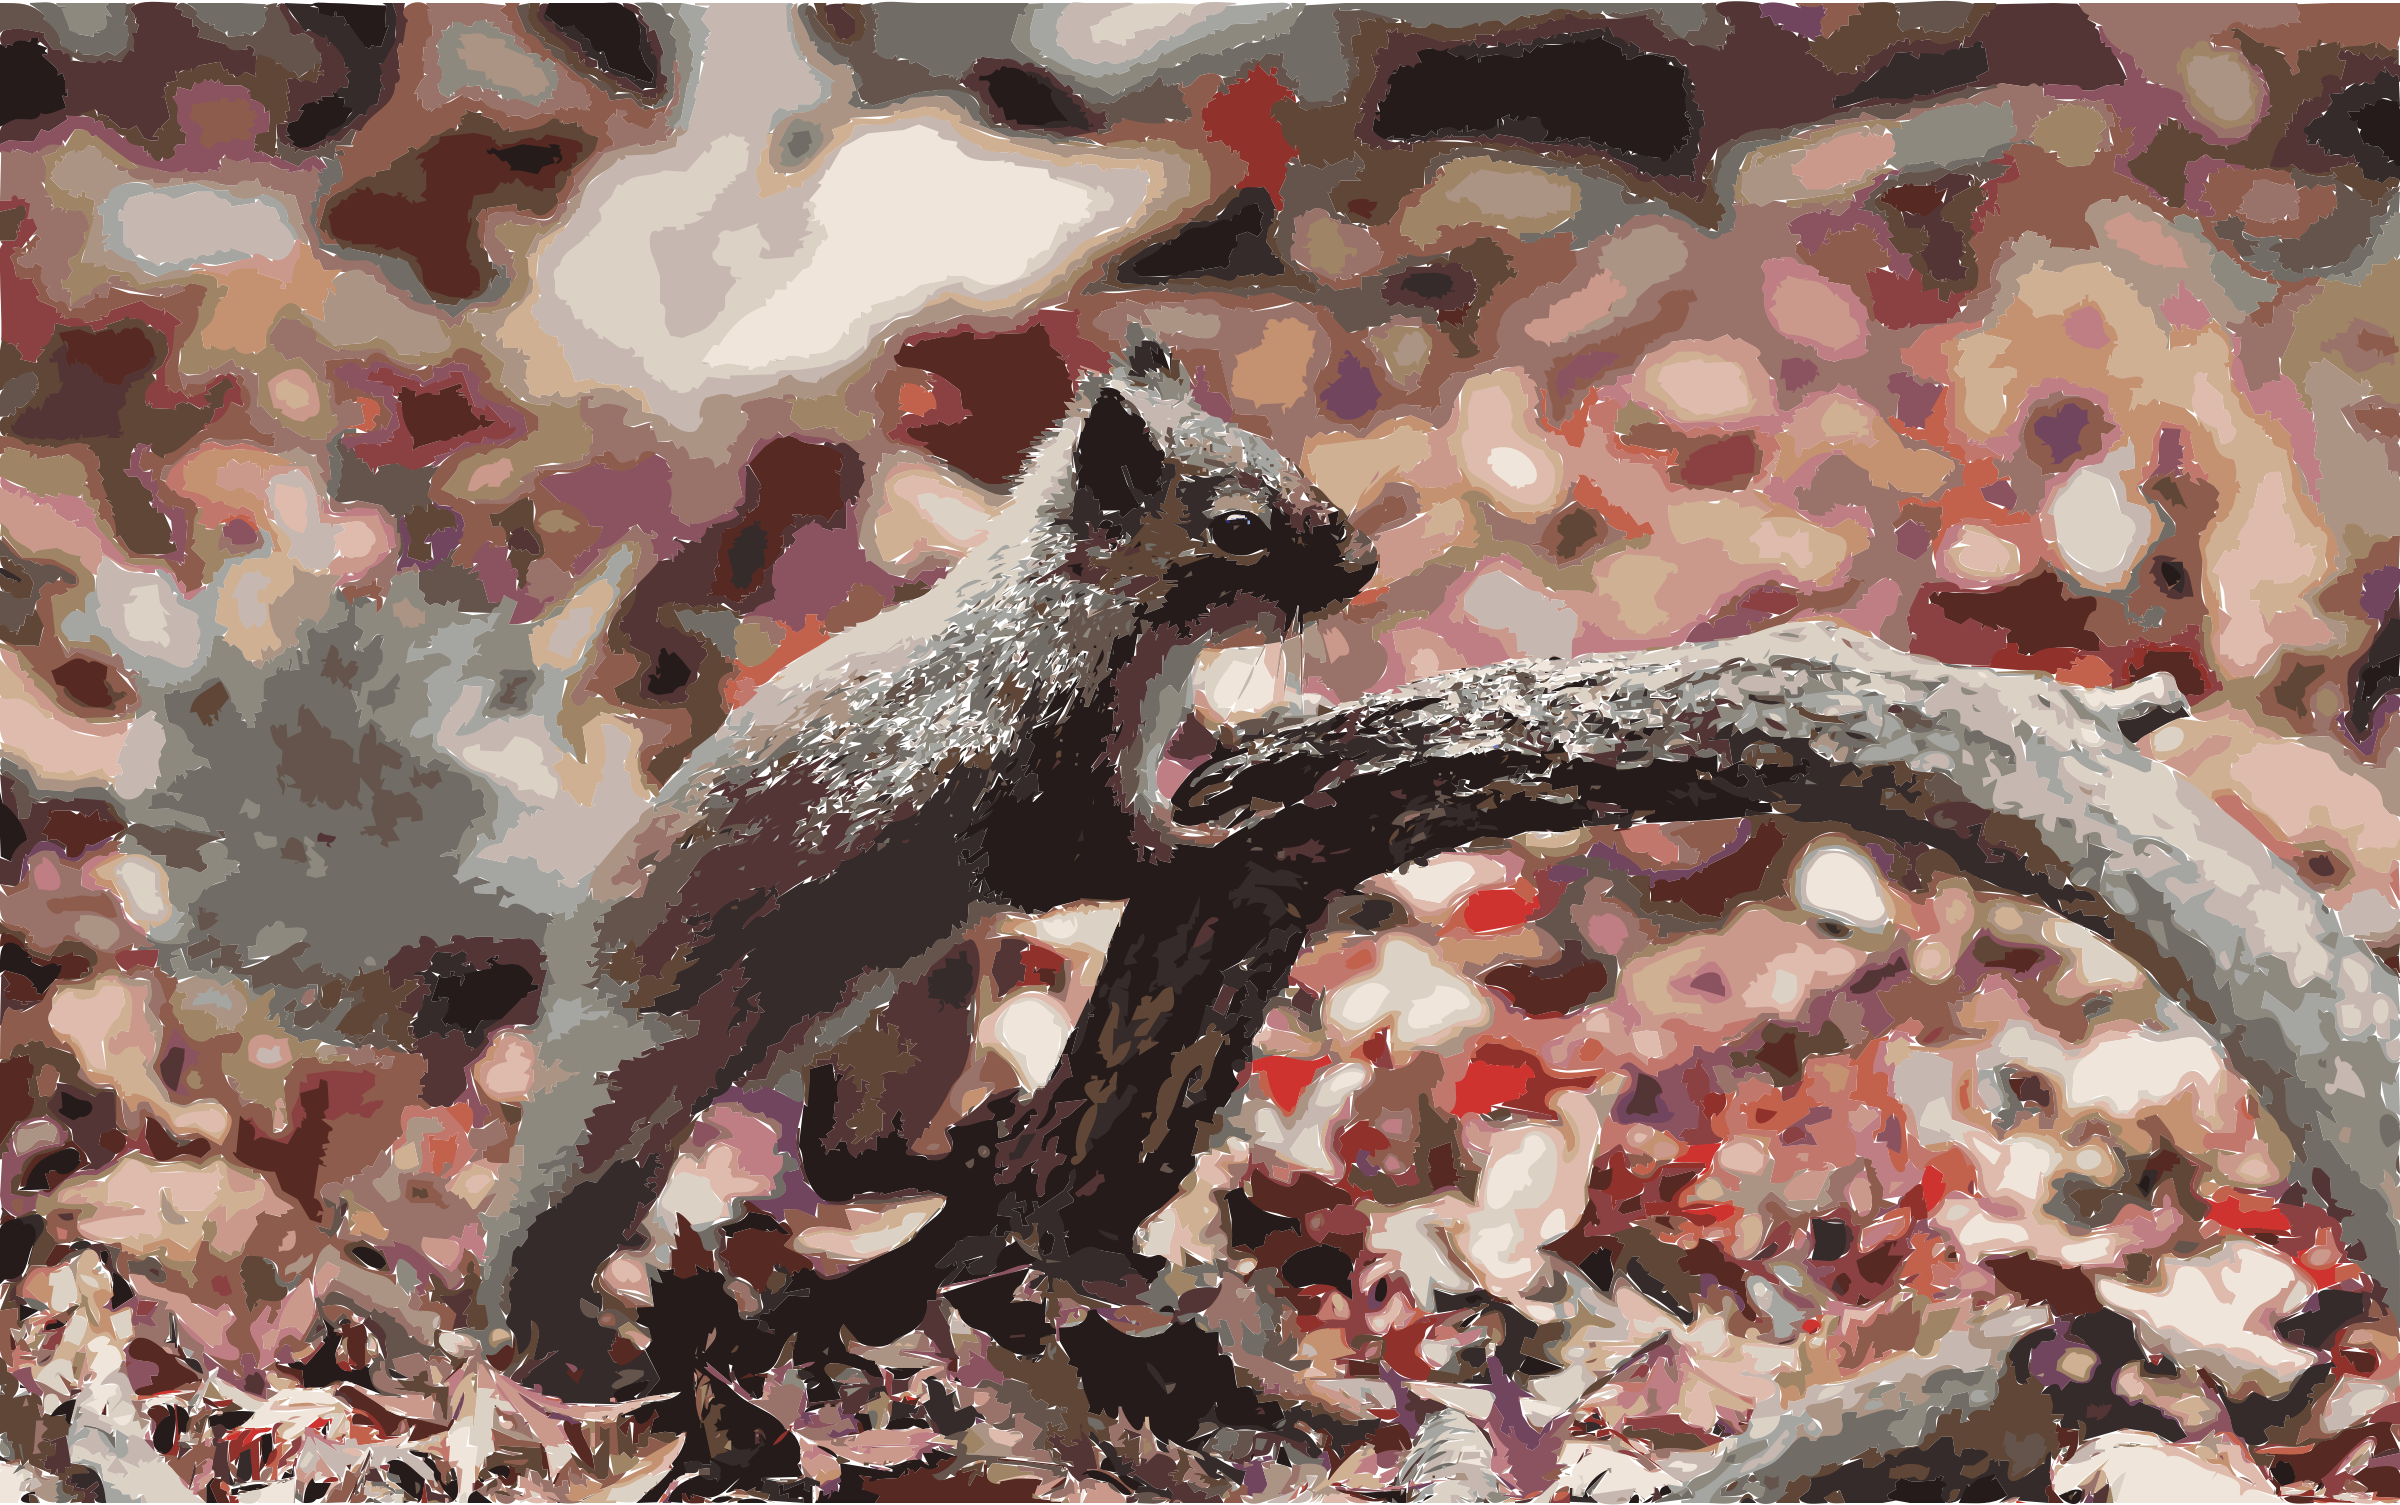 Japanese Squirrel WUXGA by 3we2nn+8w9uc0fun68aw